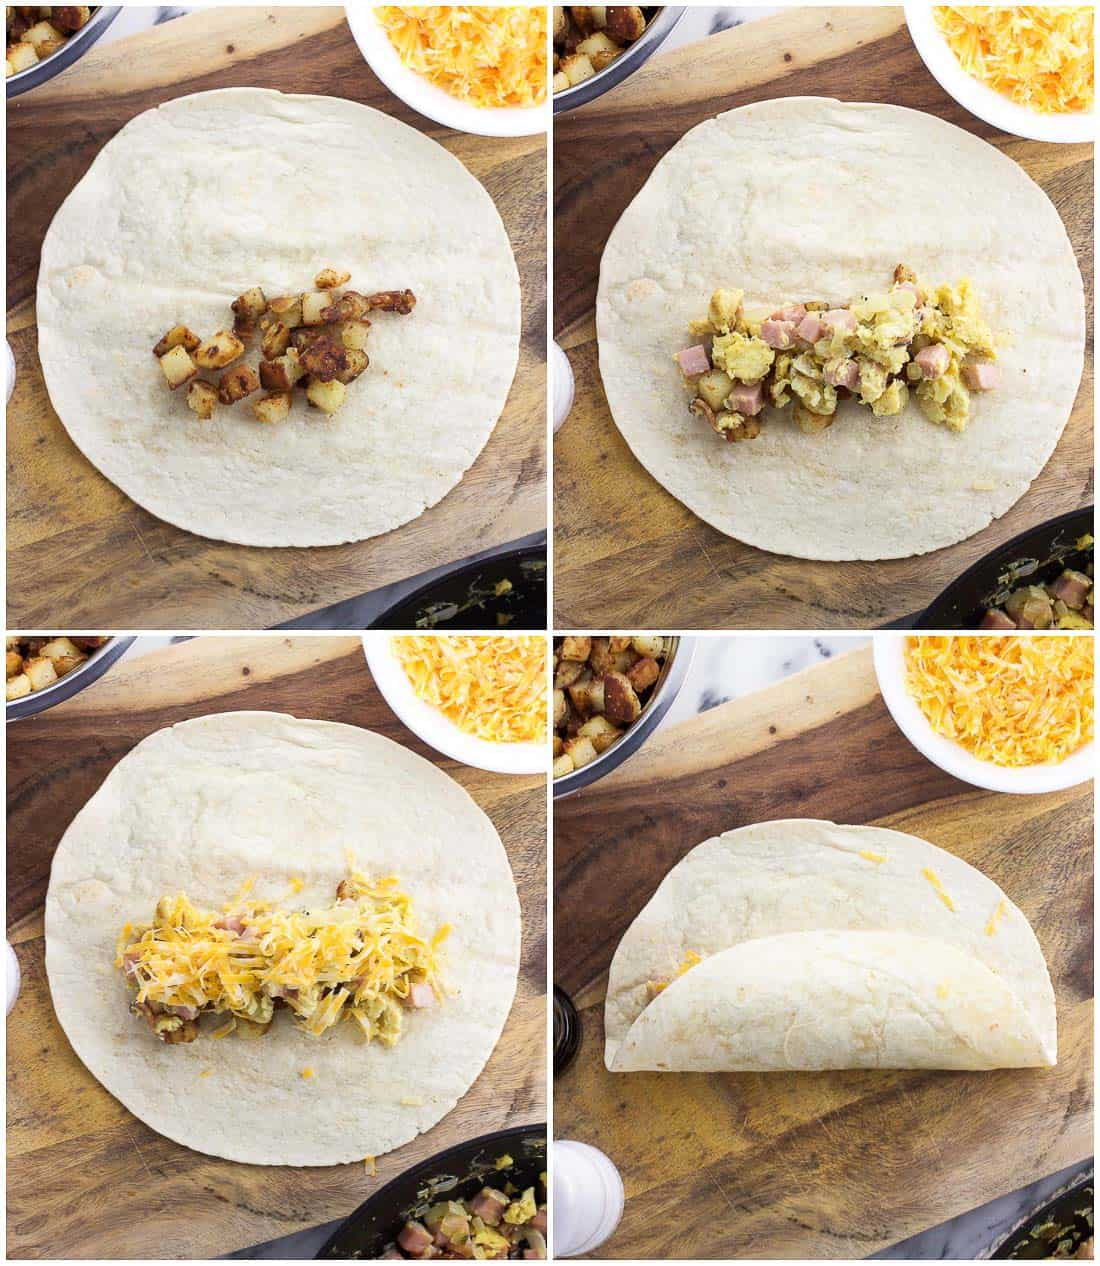 A four-image collage of the stages of folding and wrapping a tortilla into a burrito